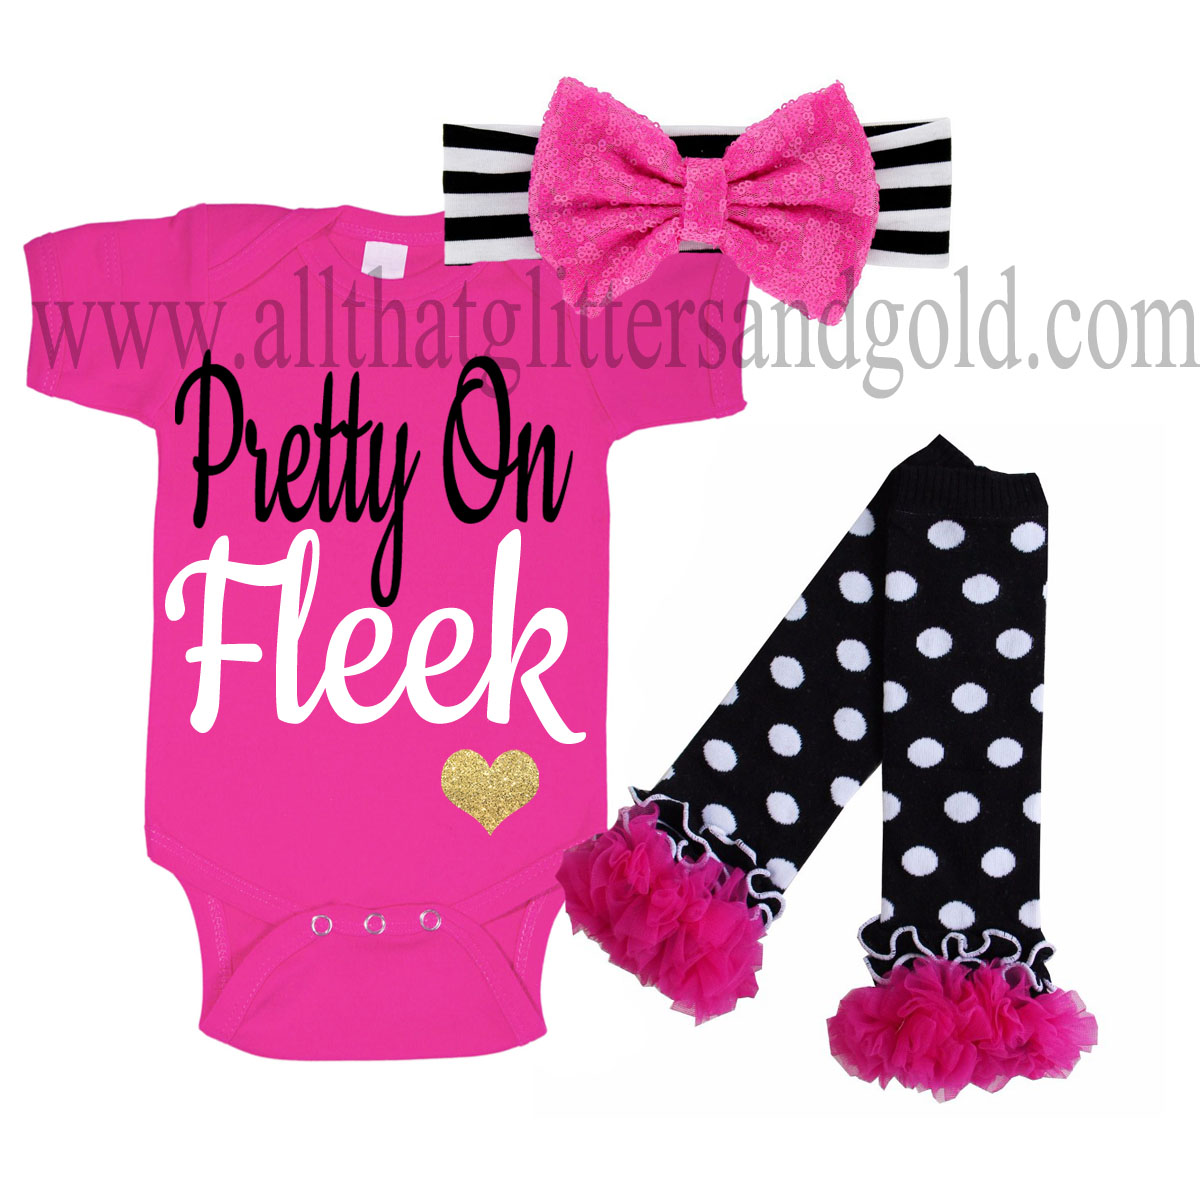 Hot Pink, Black and Gold Pretty On Fleek Baby Girl Outfit